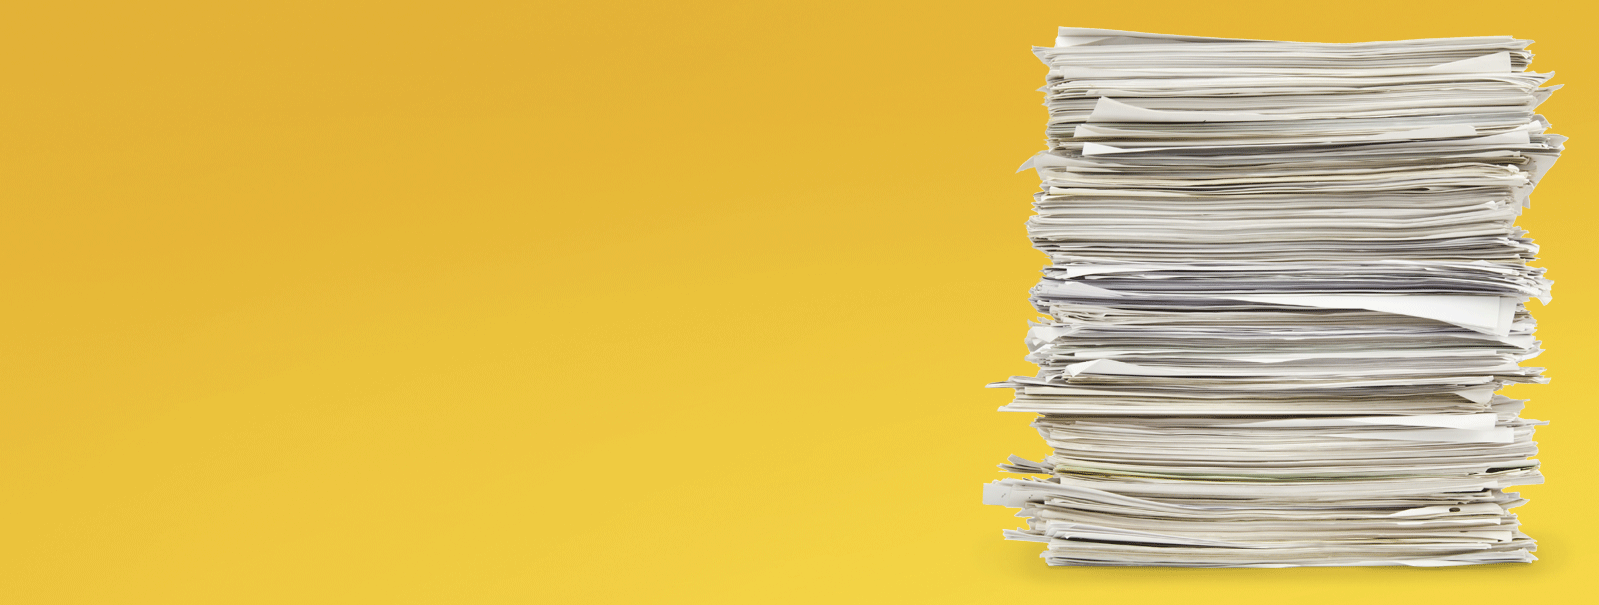 Eliminate stacks of paper by going paperless